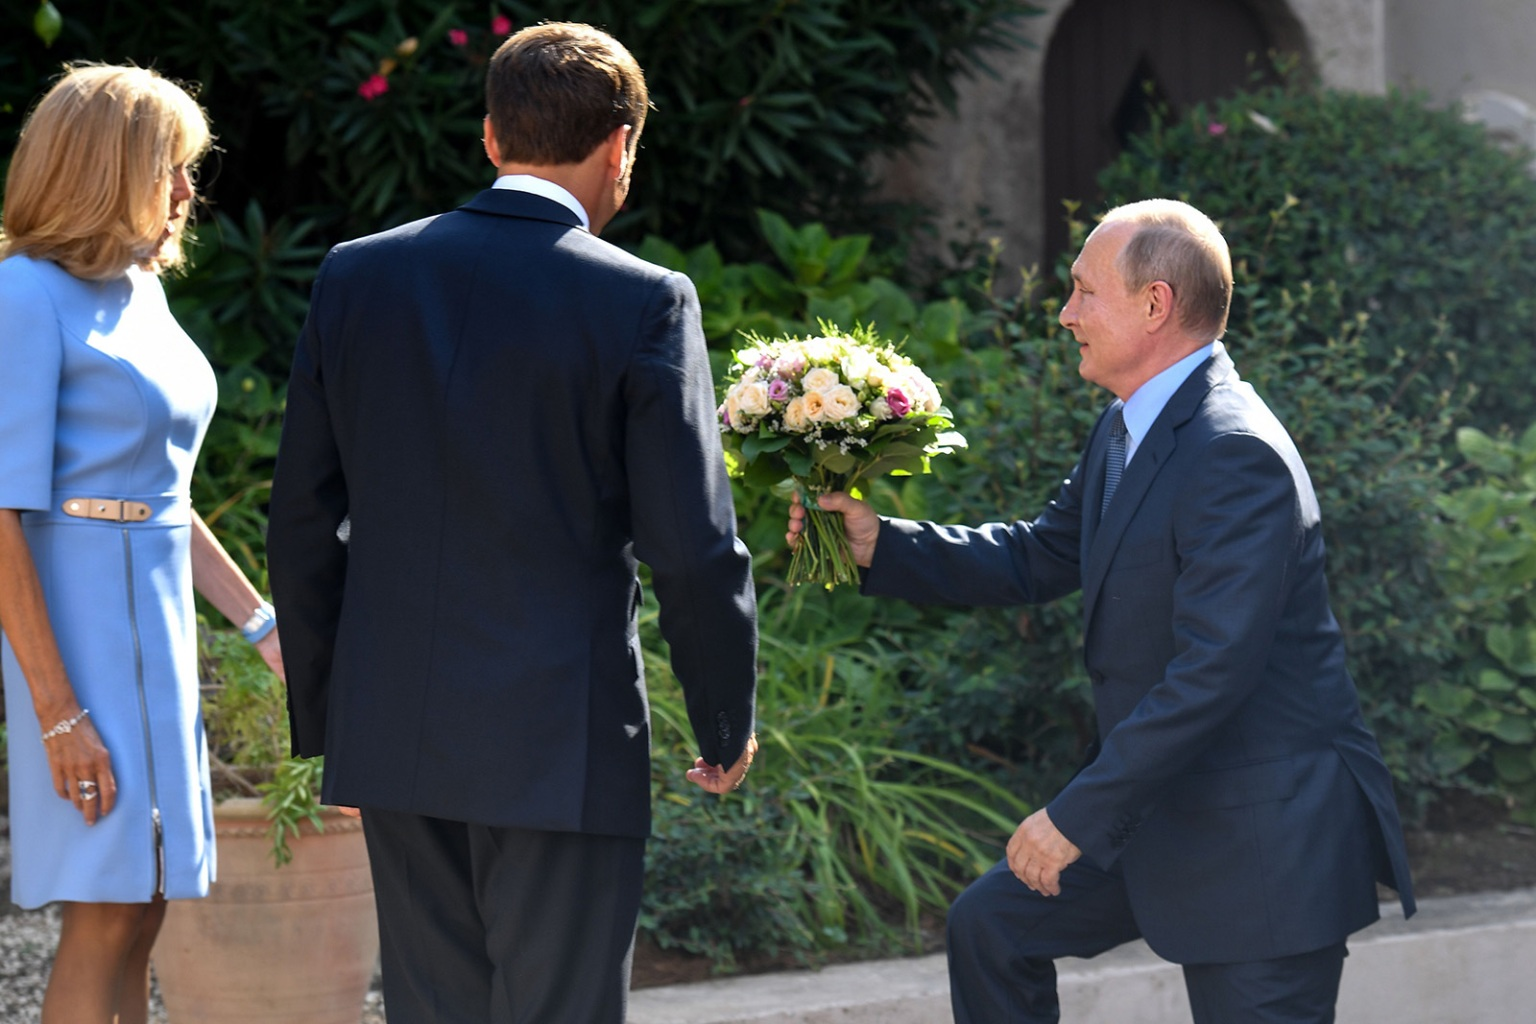 Russia's President Vladimir Putin, flanked by French President Emmanuel Macron, gives flowers to Brigitte Macron at the French president's summer retreat on the Mediterranean coast in southern France on Aug. 19. GERARD JULIEN/AFP/Getty Images